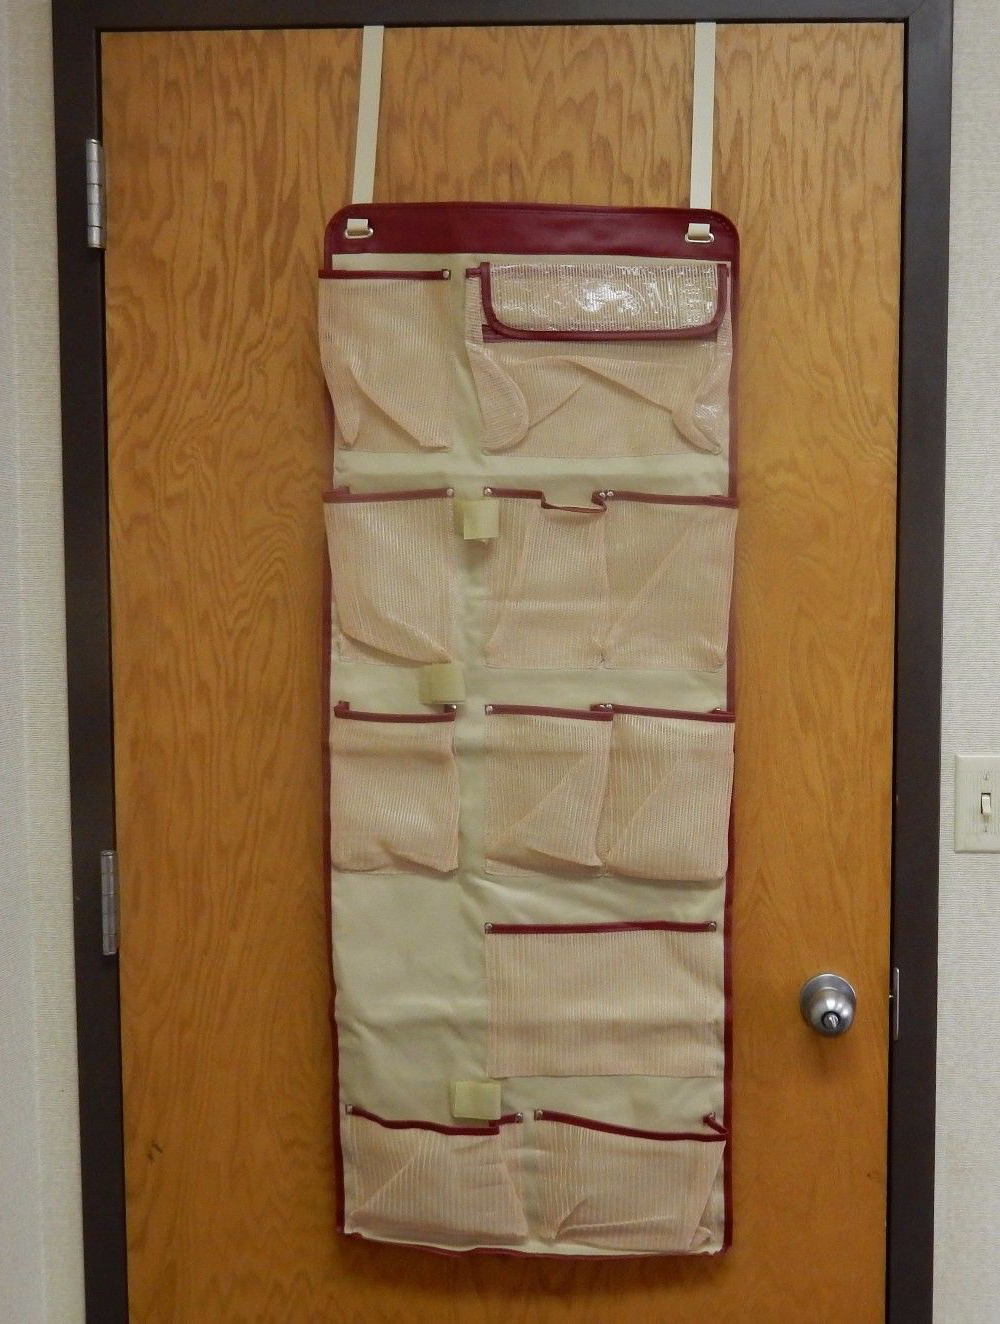 Over the door closet organizer 11 pockets pantry for Over wardrobe storage